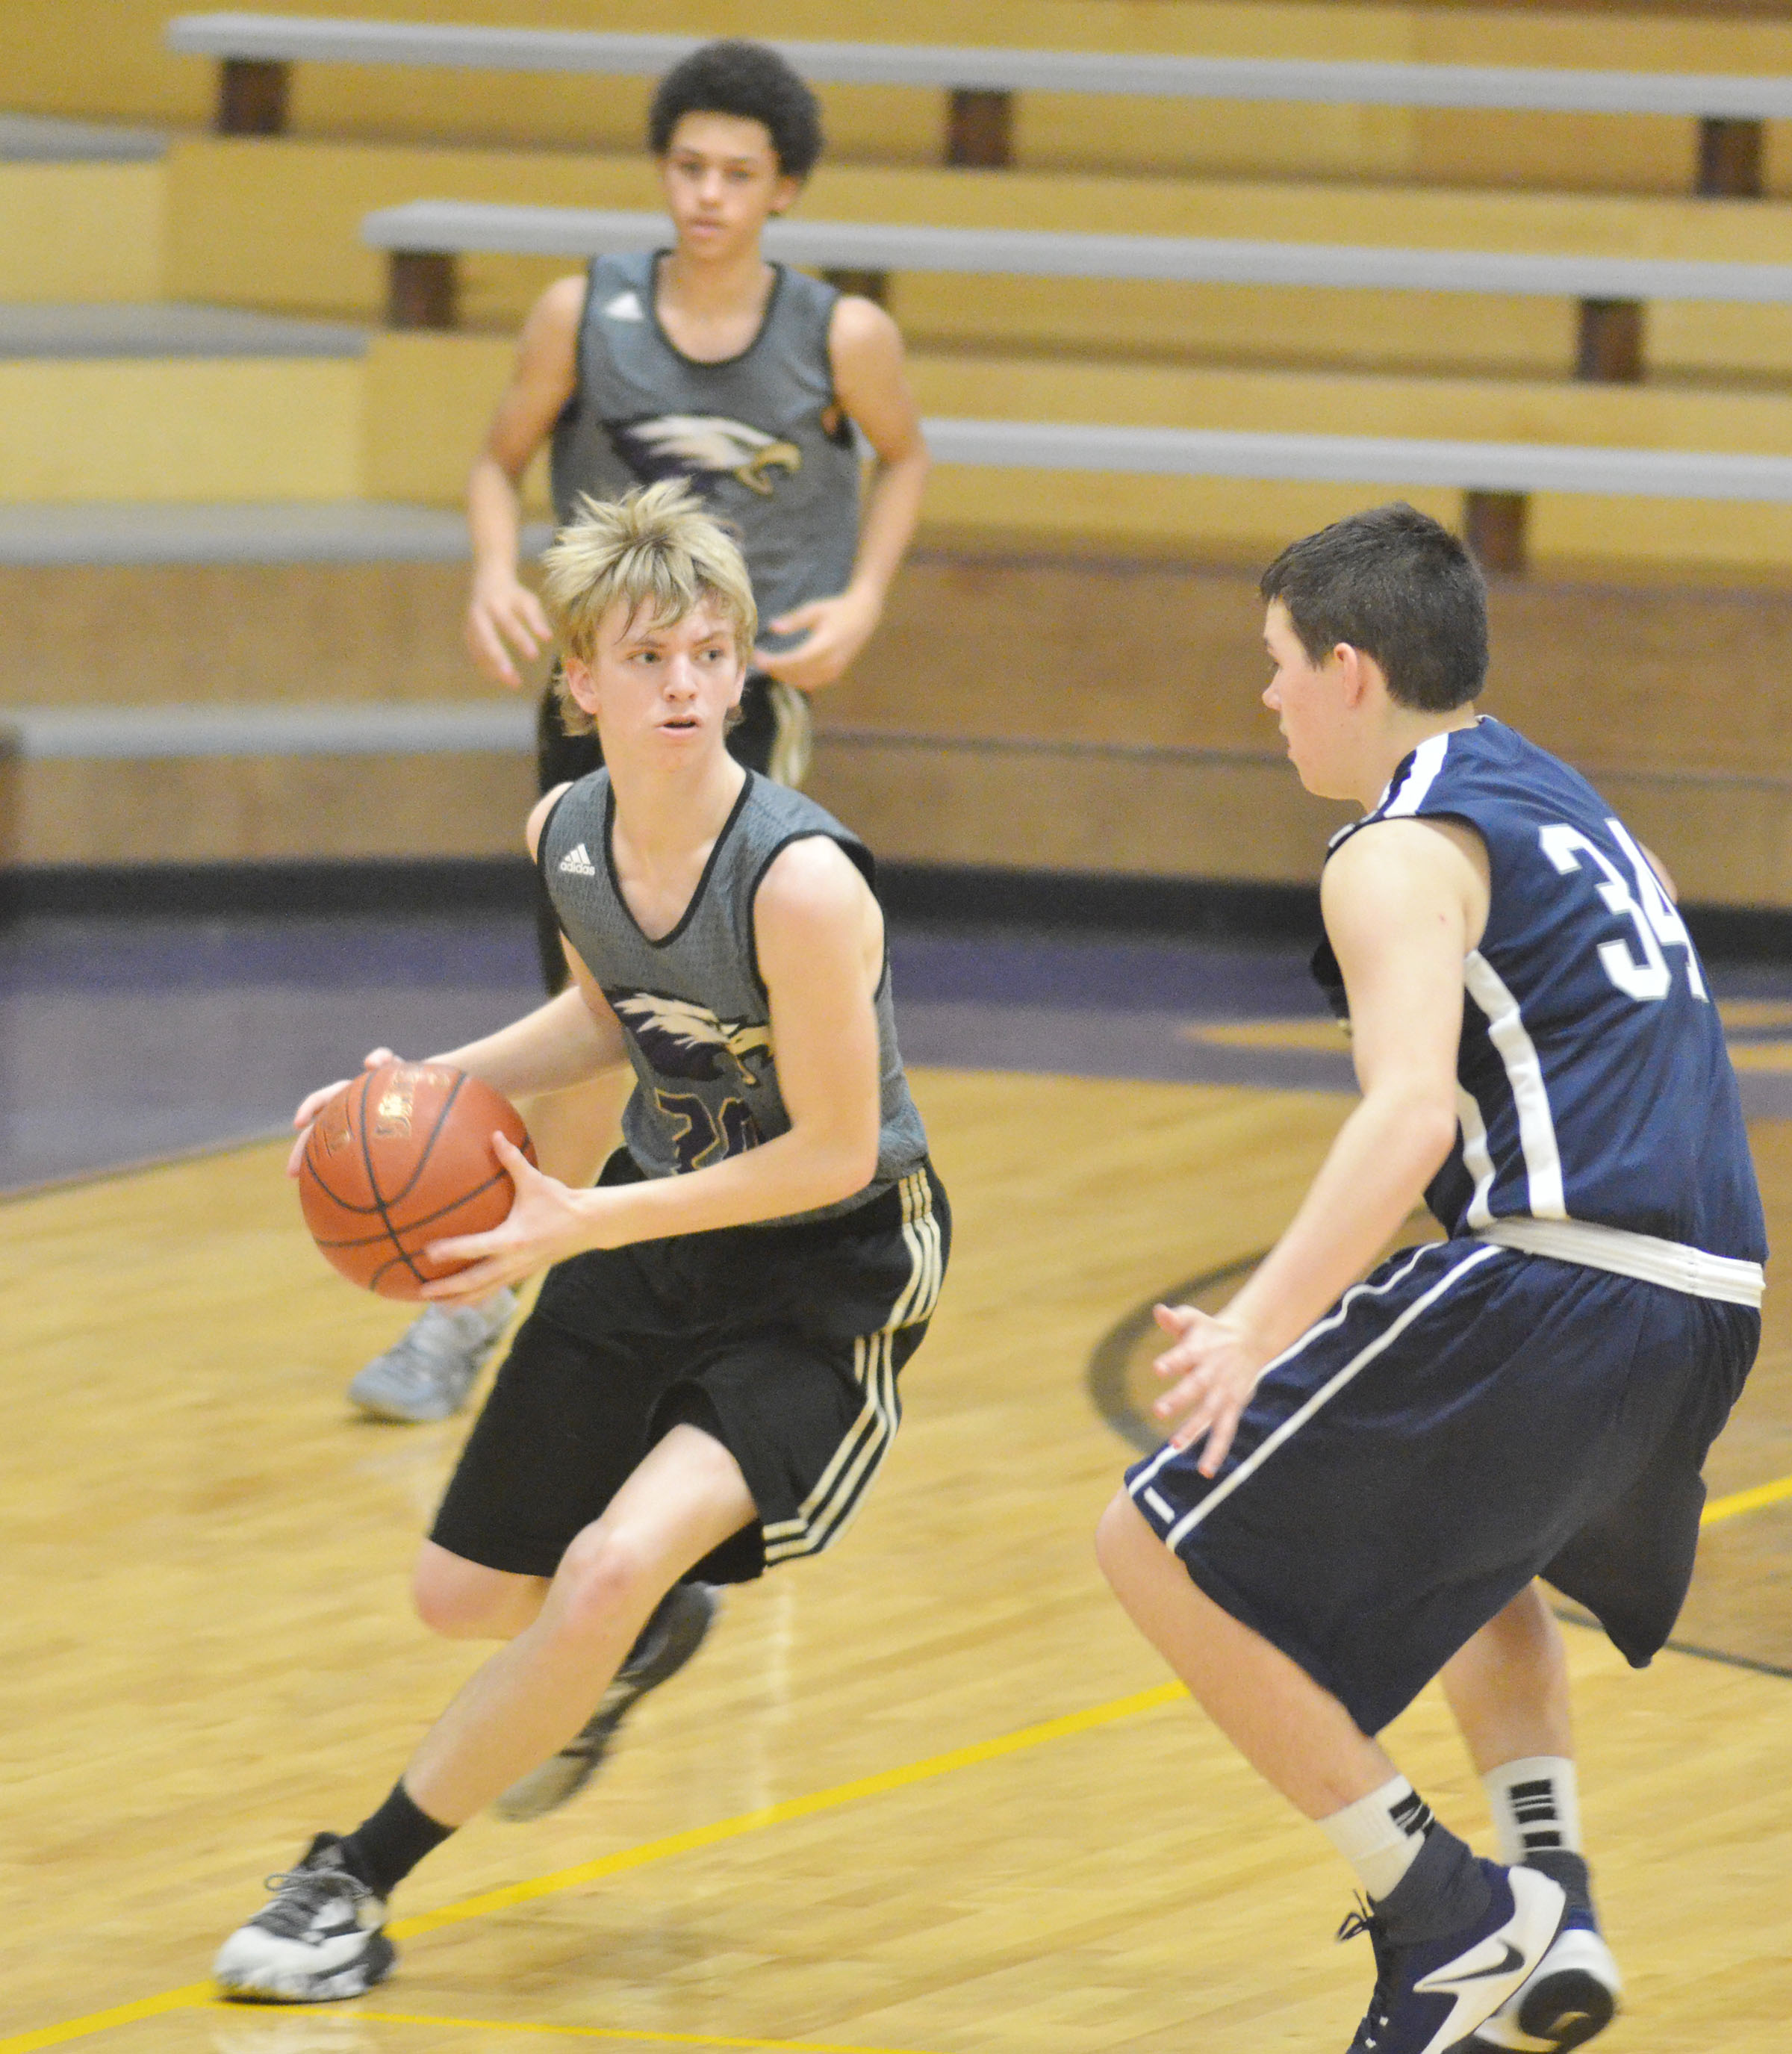 Campbellsville Middle School eighth-grader Arren Hash dribbles down the court.